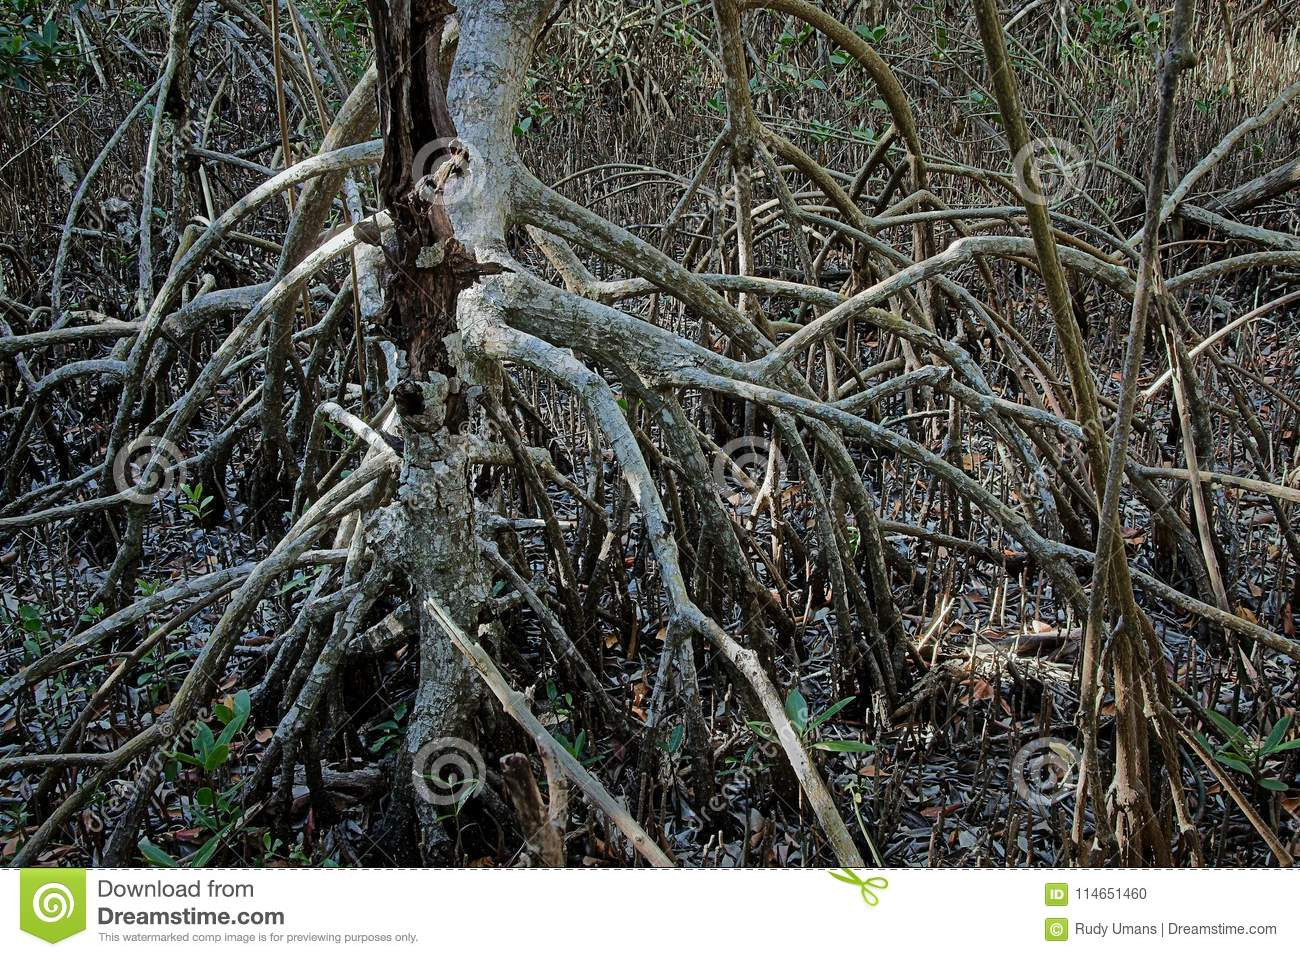 Red mangrove roots in the Everglades